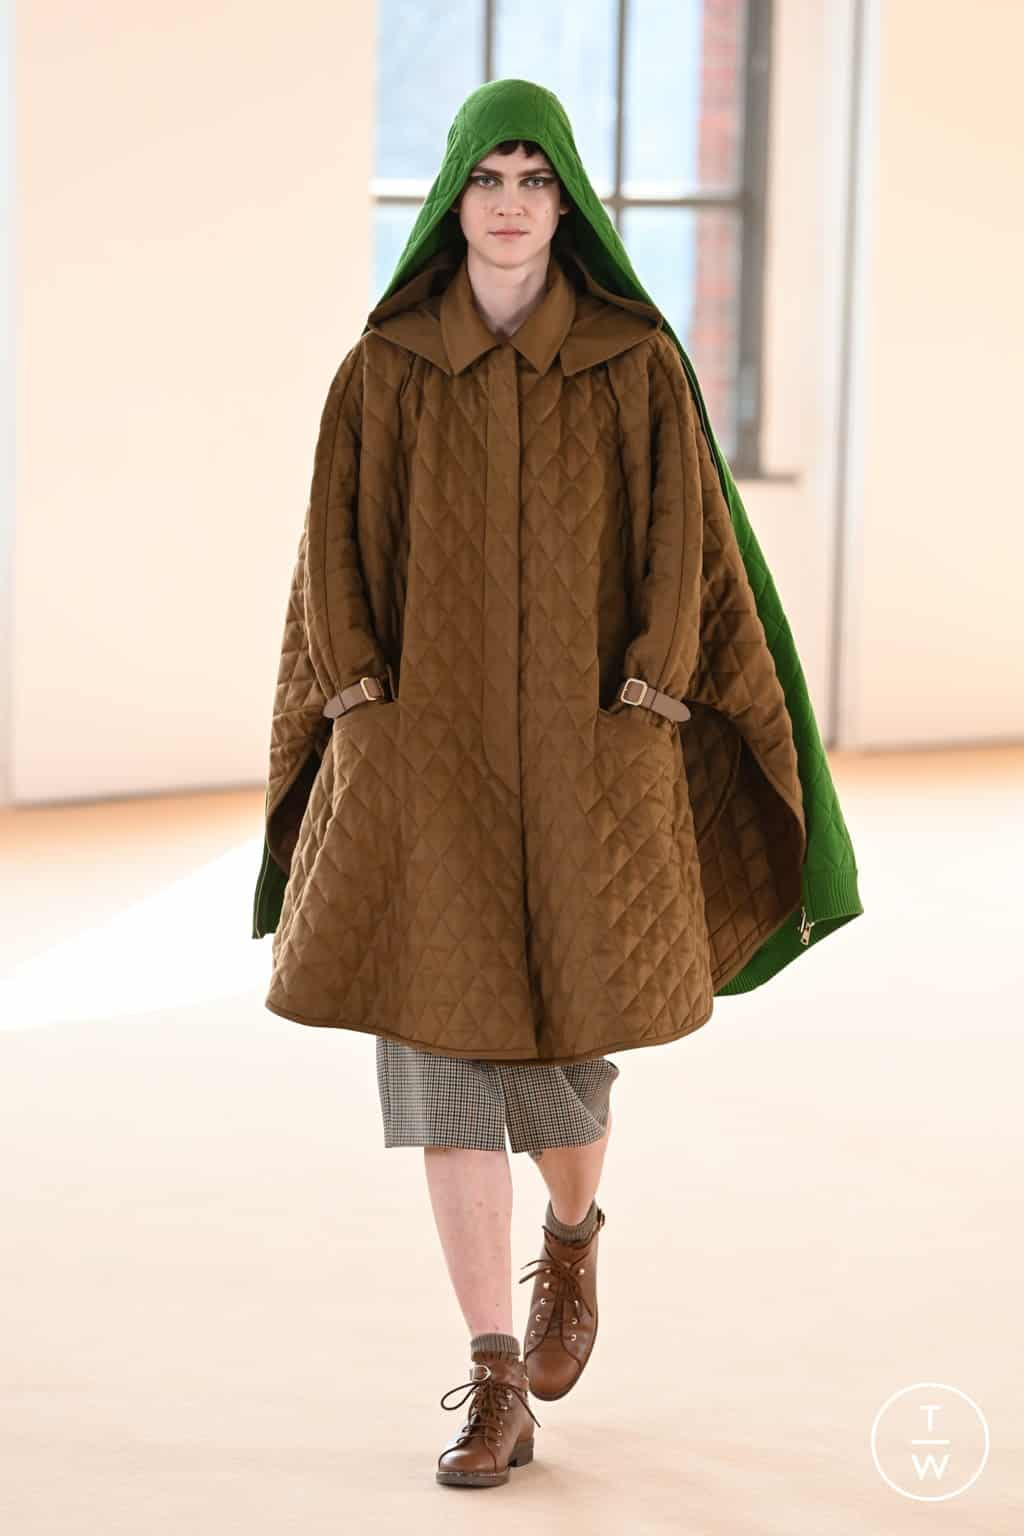 MAX MARA FALL/WINTER 2021 — Look 24